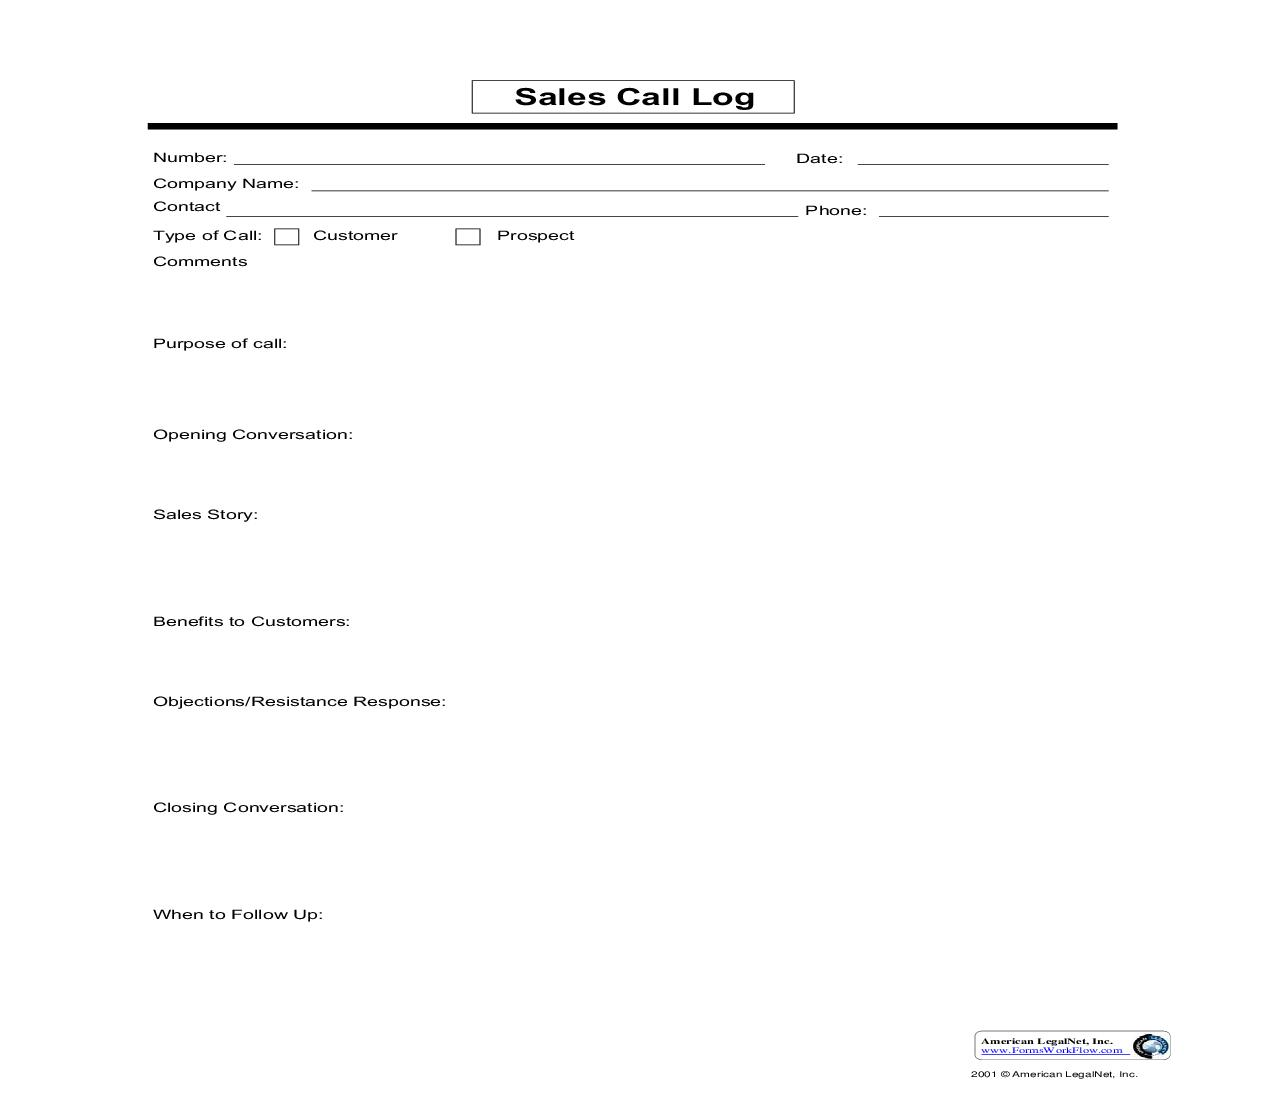 Sales Call Log | Pdf Fpdf Doc Docx | Business Forms